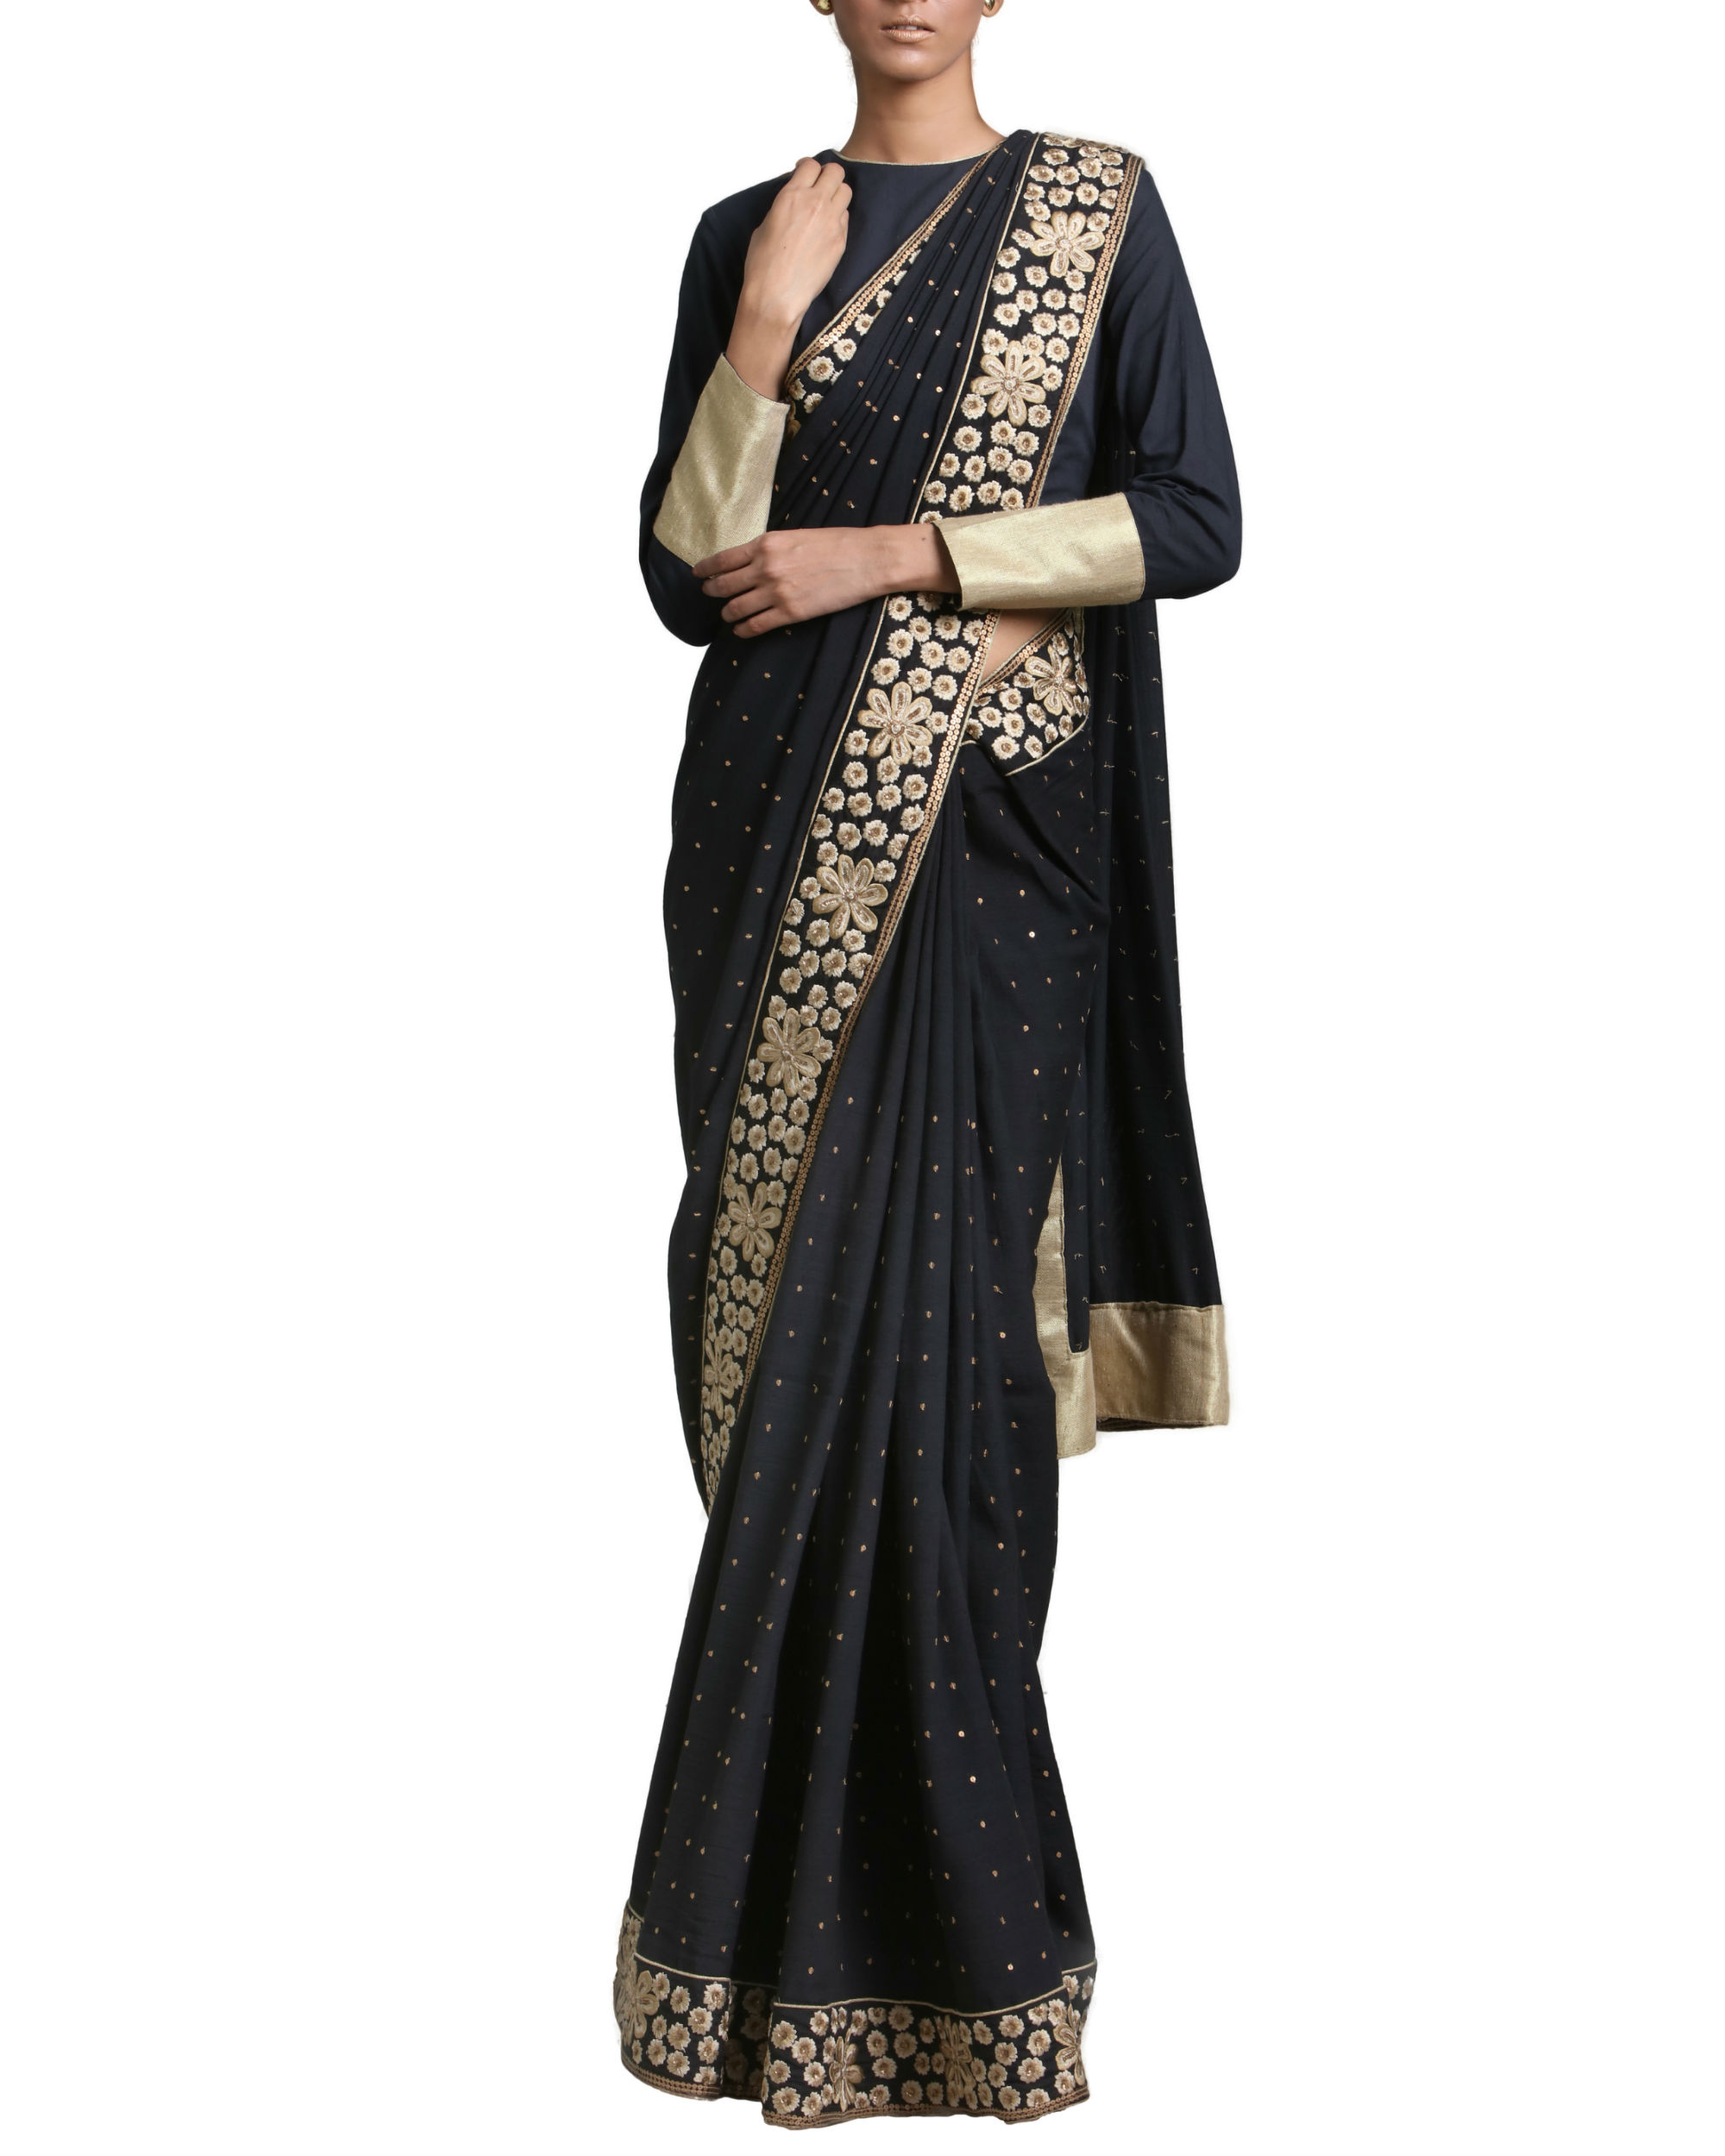 Black and gold saree